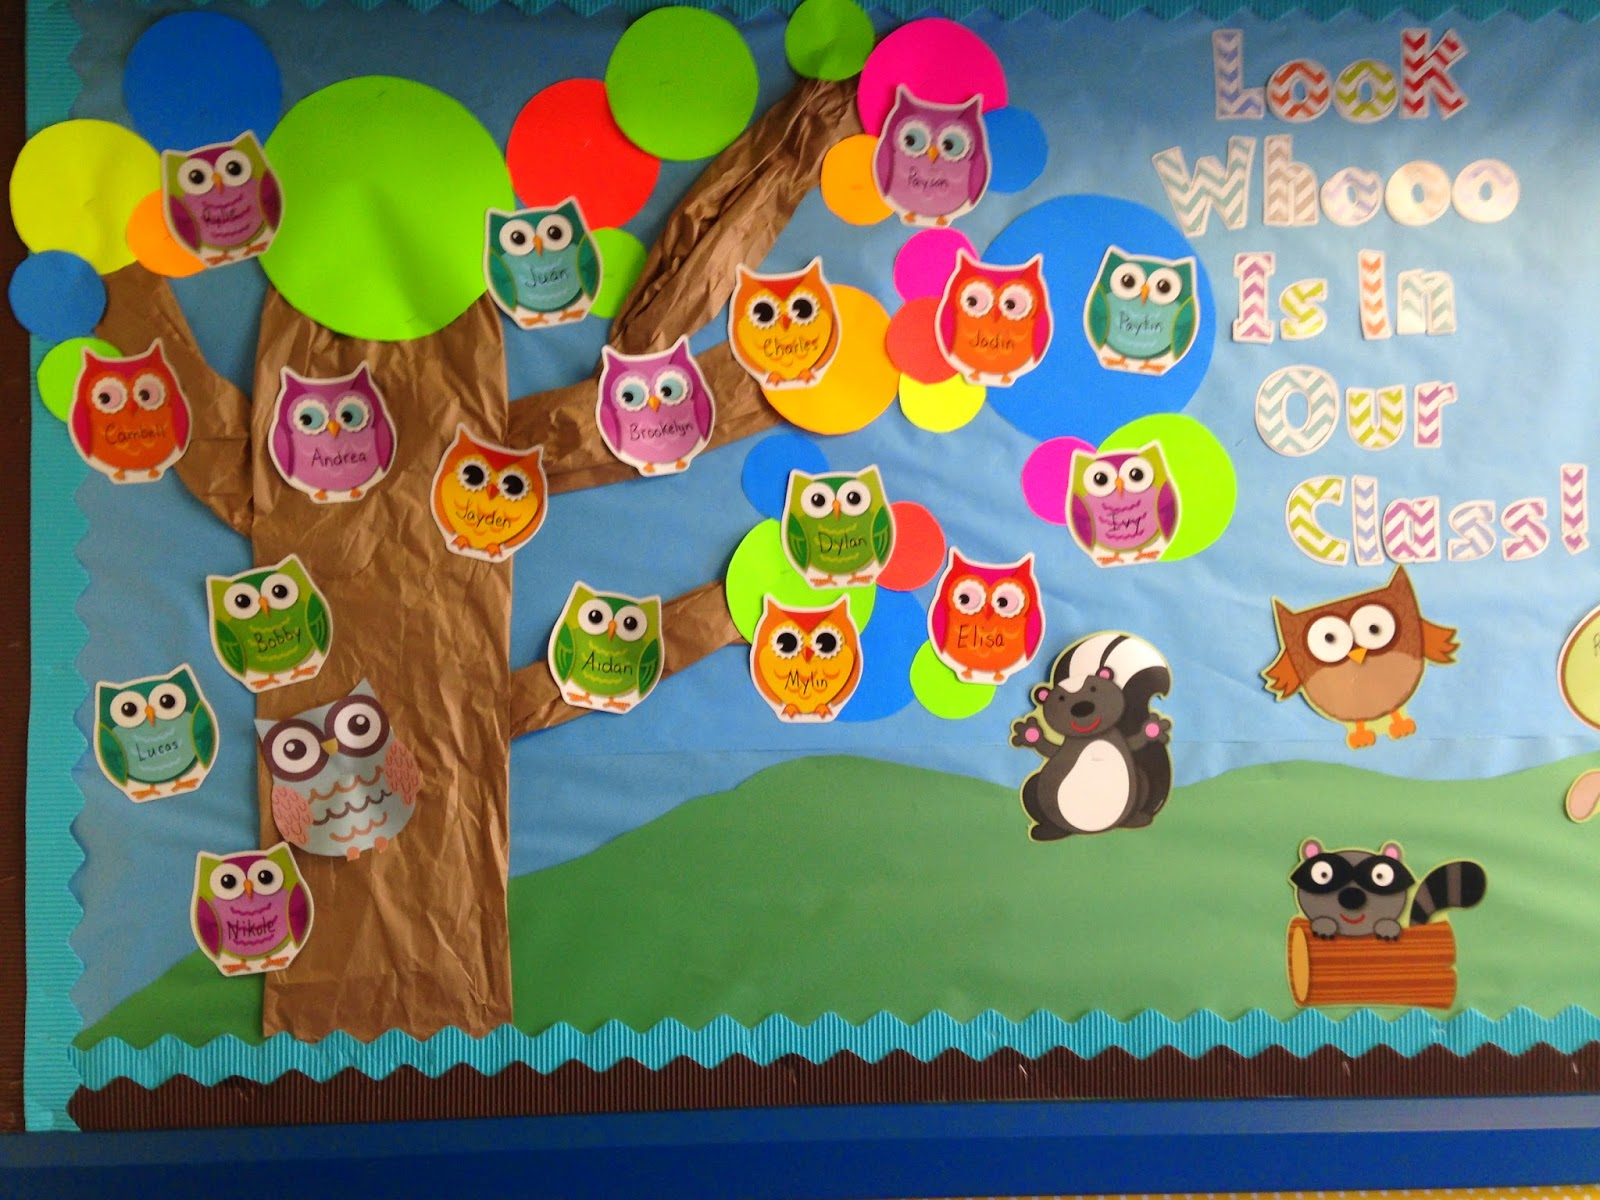 I Am Loving My Classroom Setup Design It Looks Fantabulous Theme Is Woodland Animals With Chevron And Polka Dots Cant Wait For The Kiddos To Start